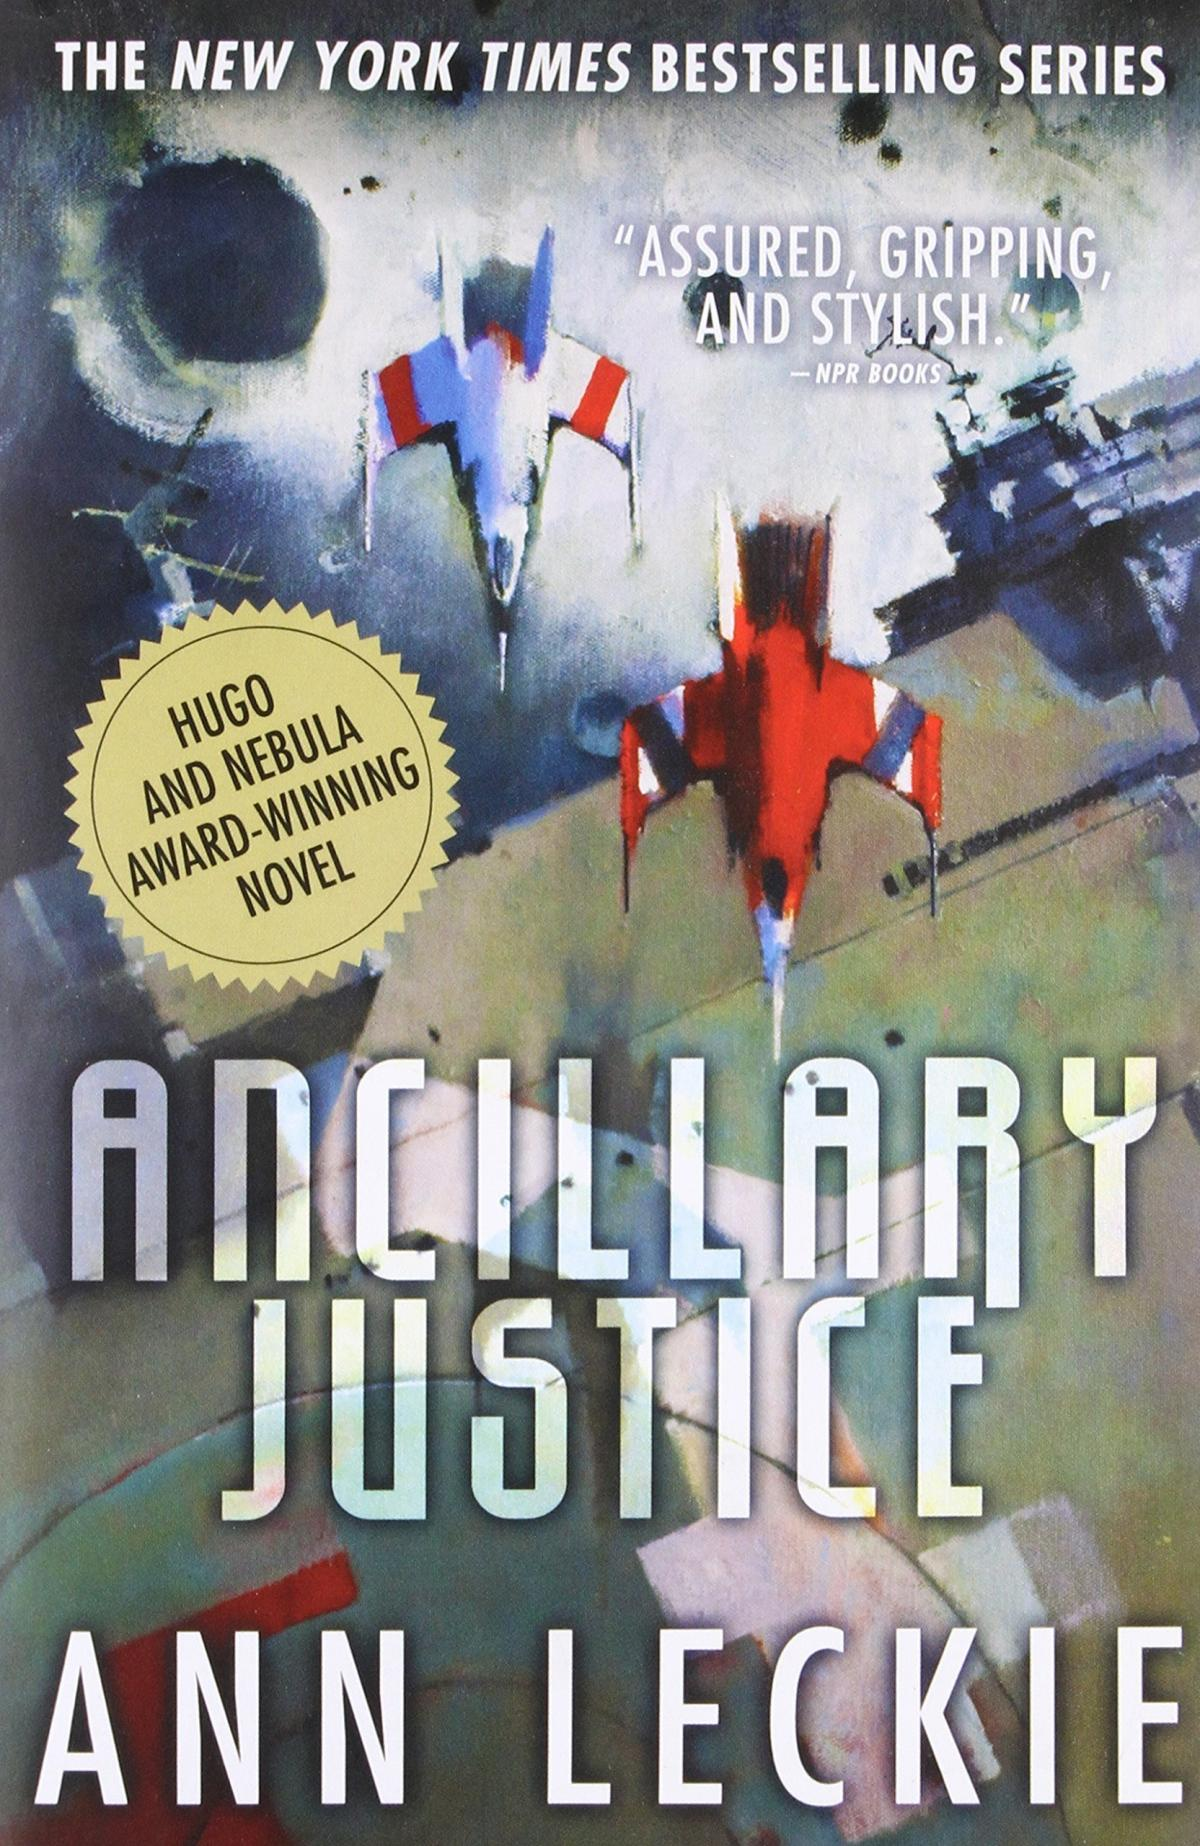 Ancillary Justice, by Ann Leckie